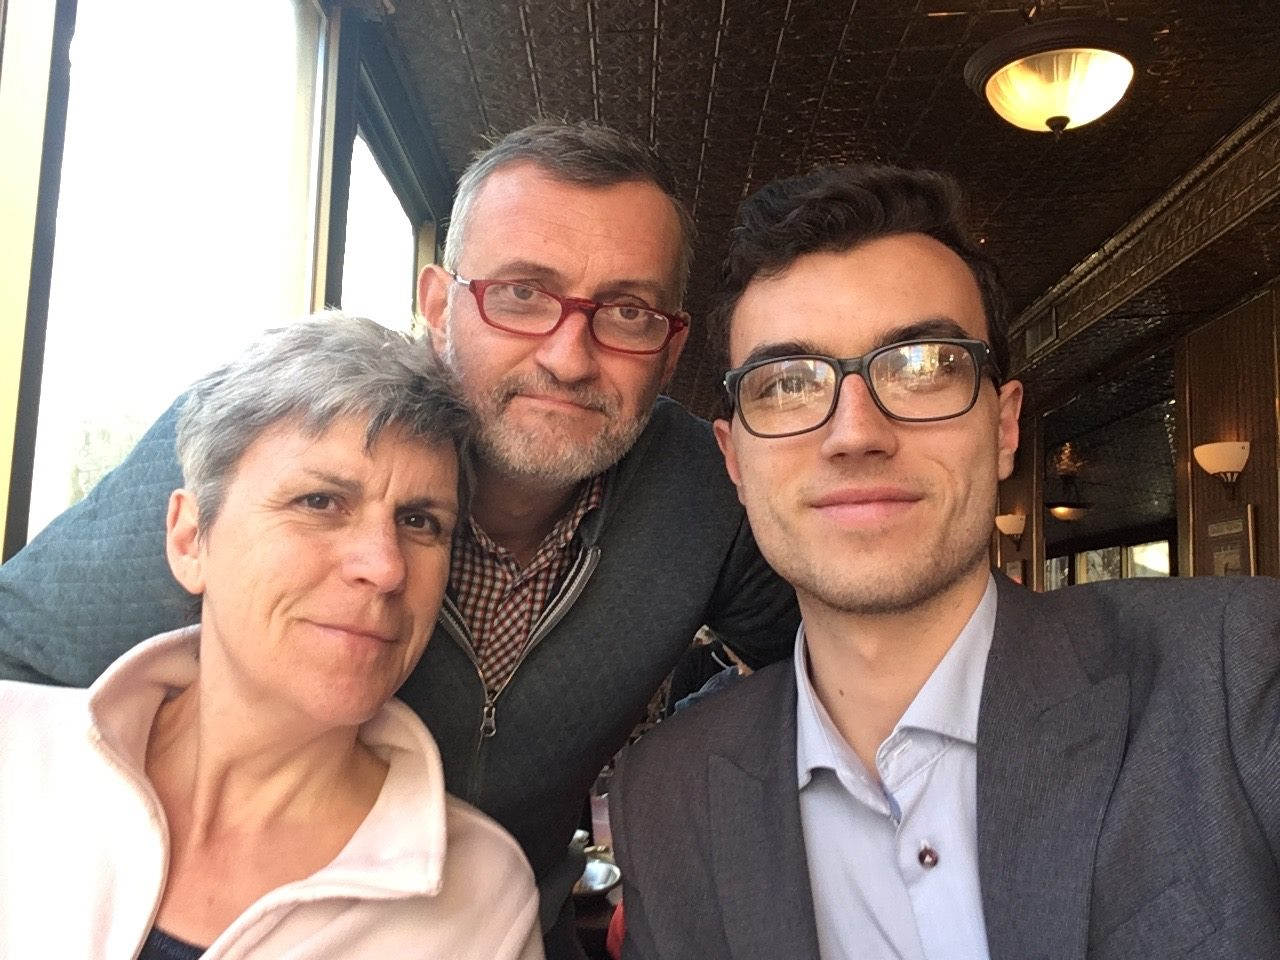 Me and my parents in NYC last year